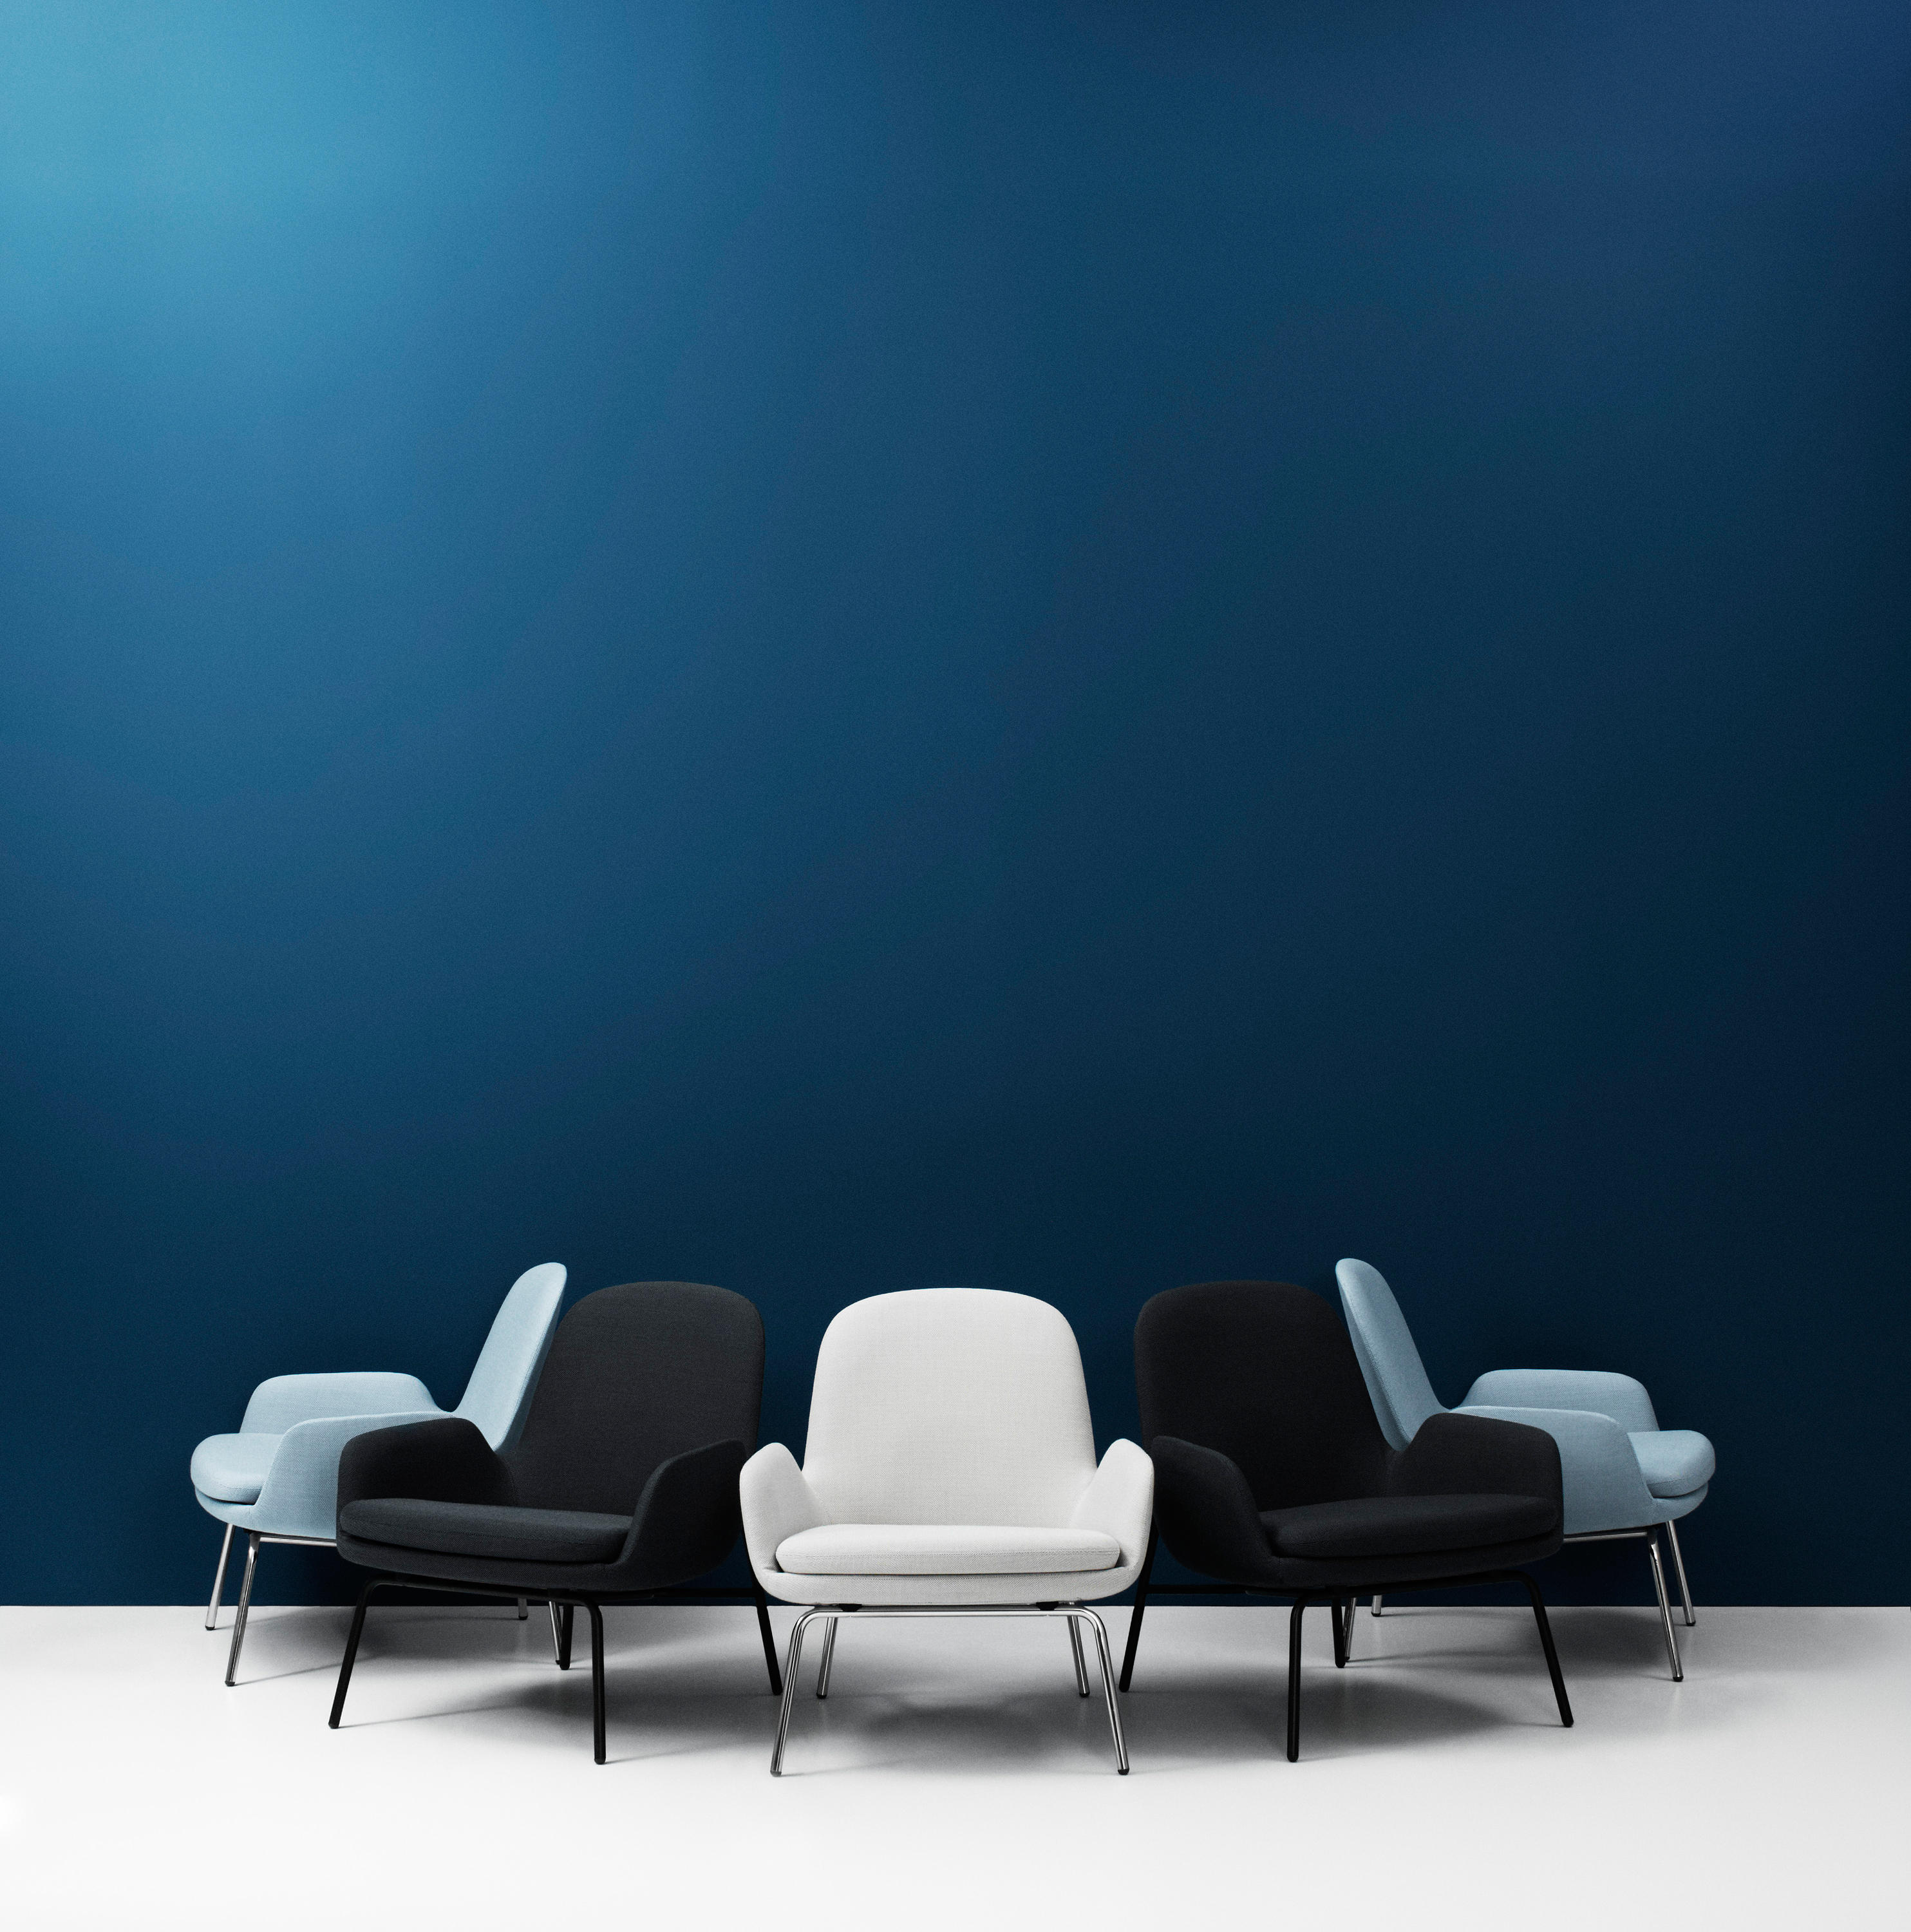 era lounge chair low lounge chairs from normann copenhagen architonic. Black Bedroom Furniture Sets. Home Design Ideas